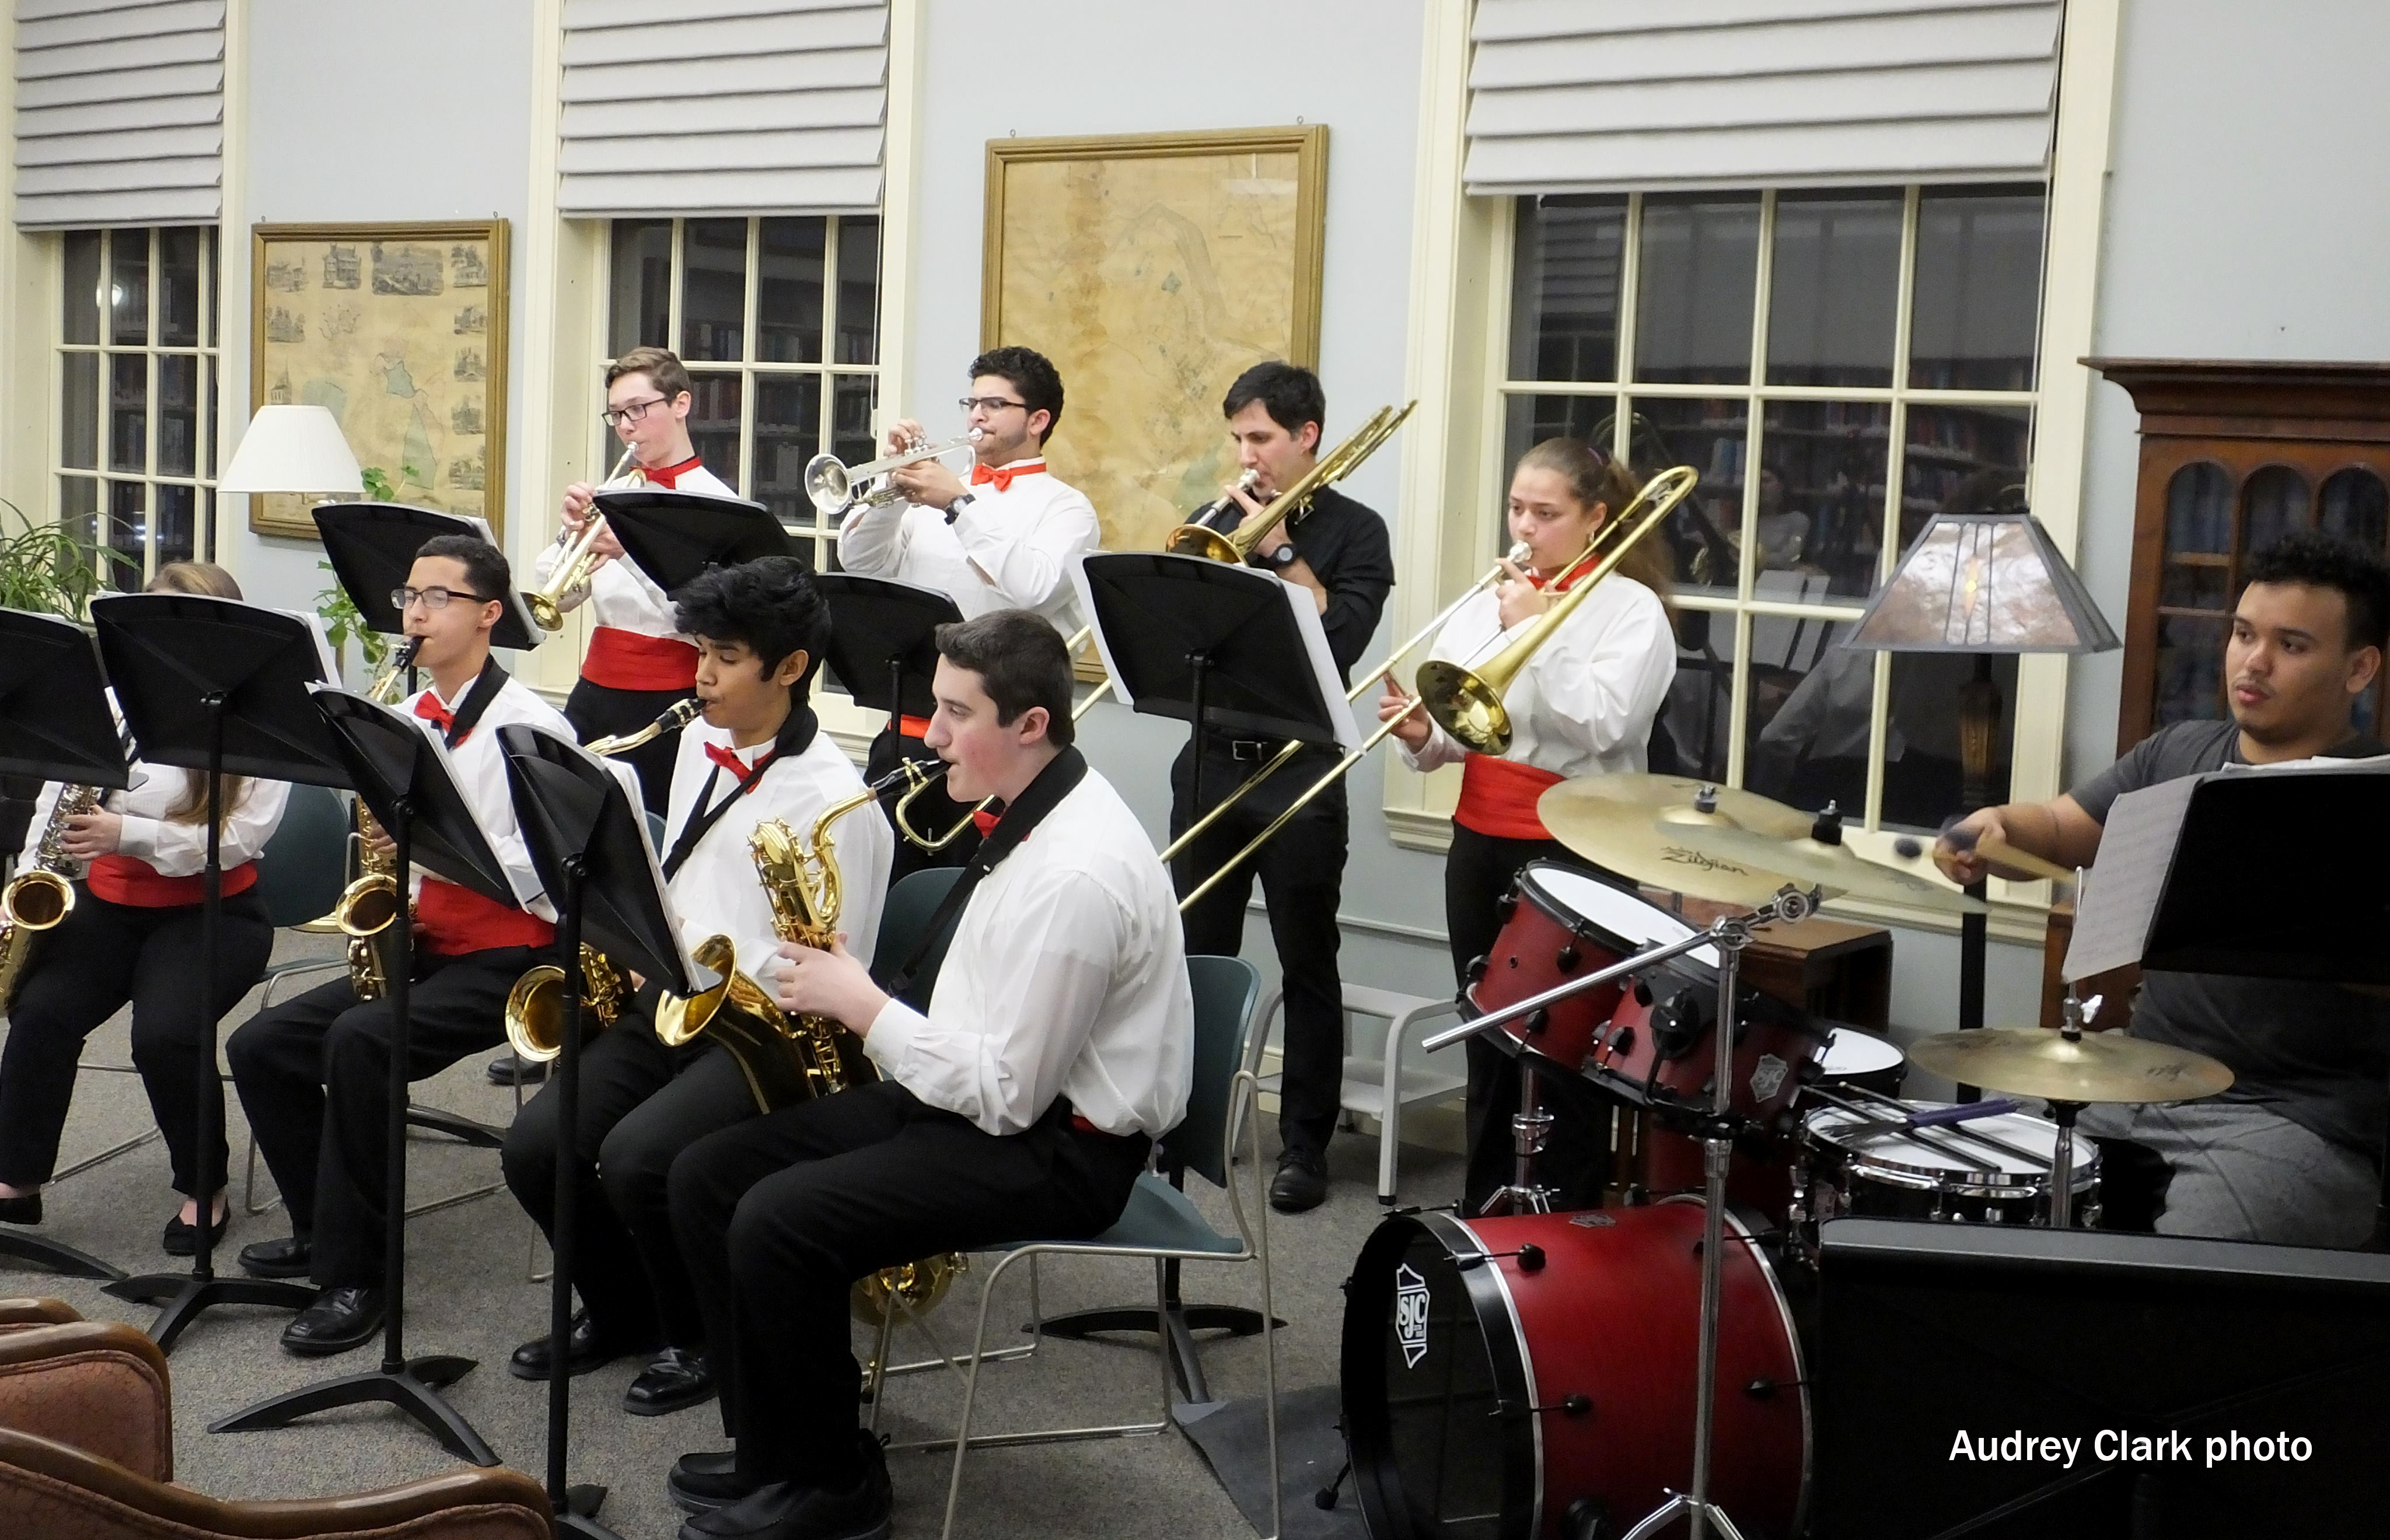 High school jazz band performs at Southbridge library